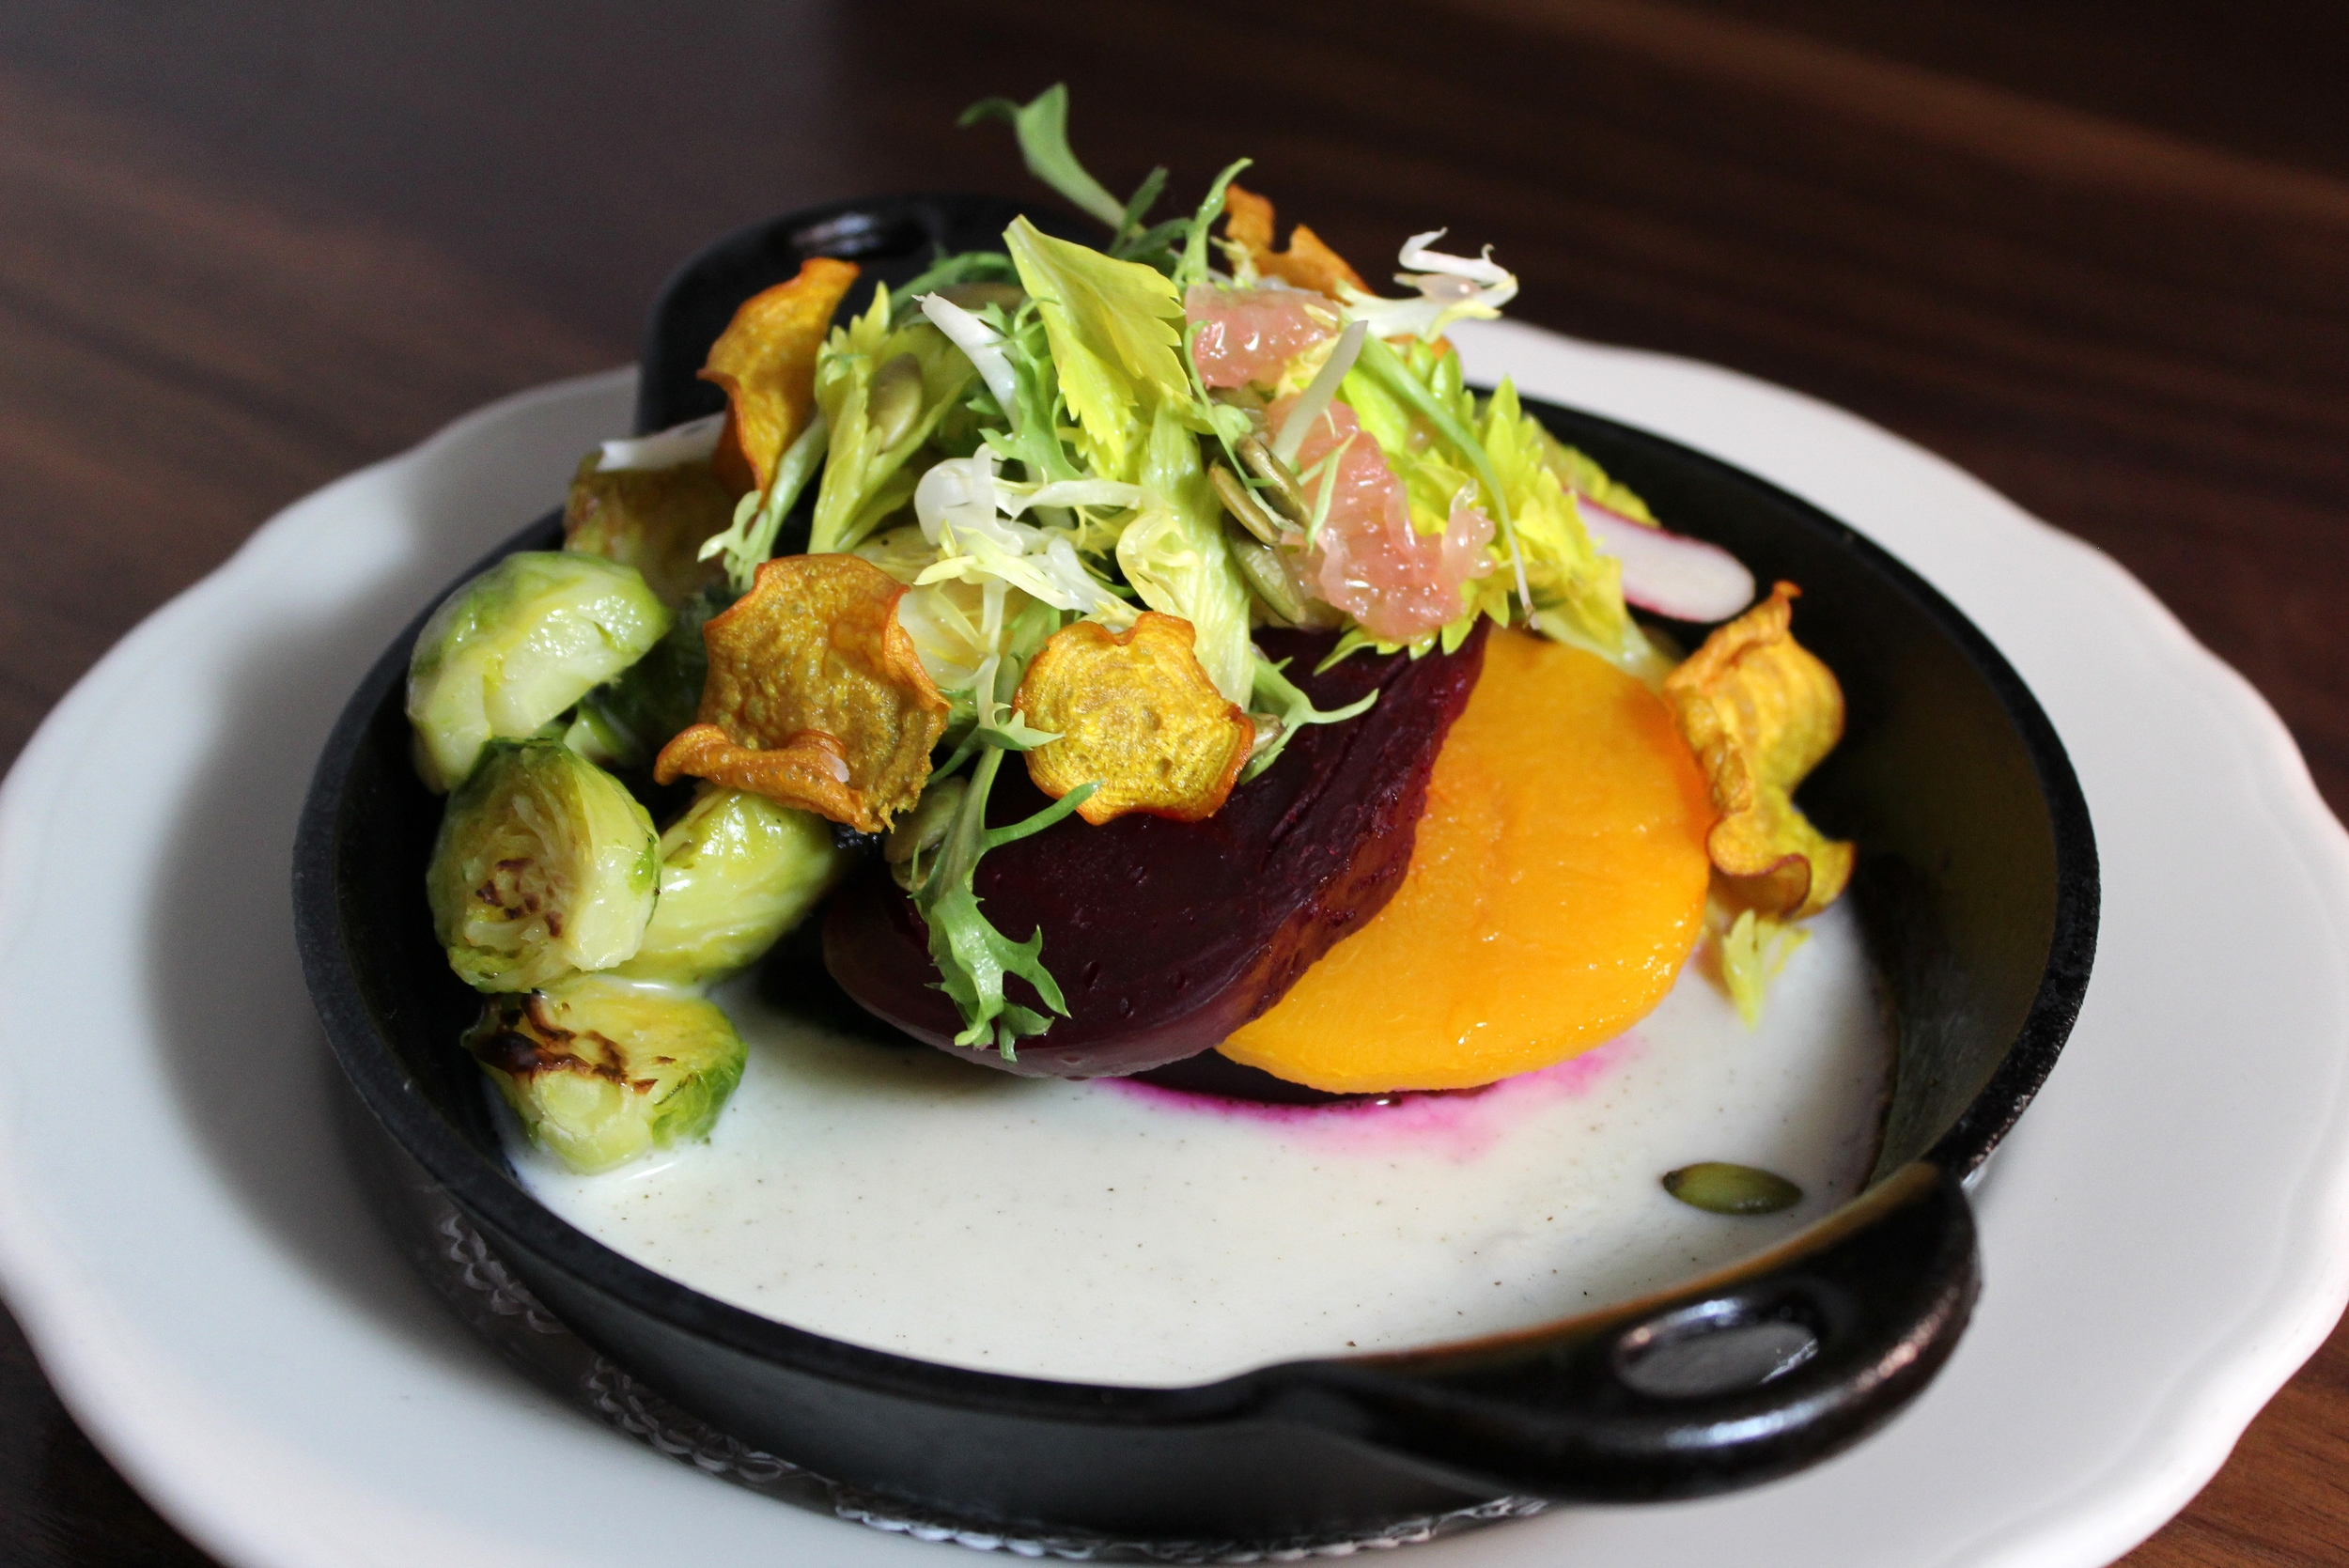 Beets, brussels sprouts, squash Southern Rail